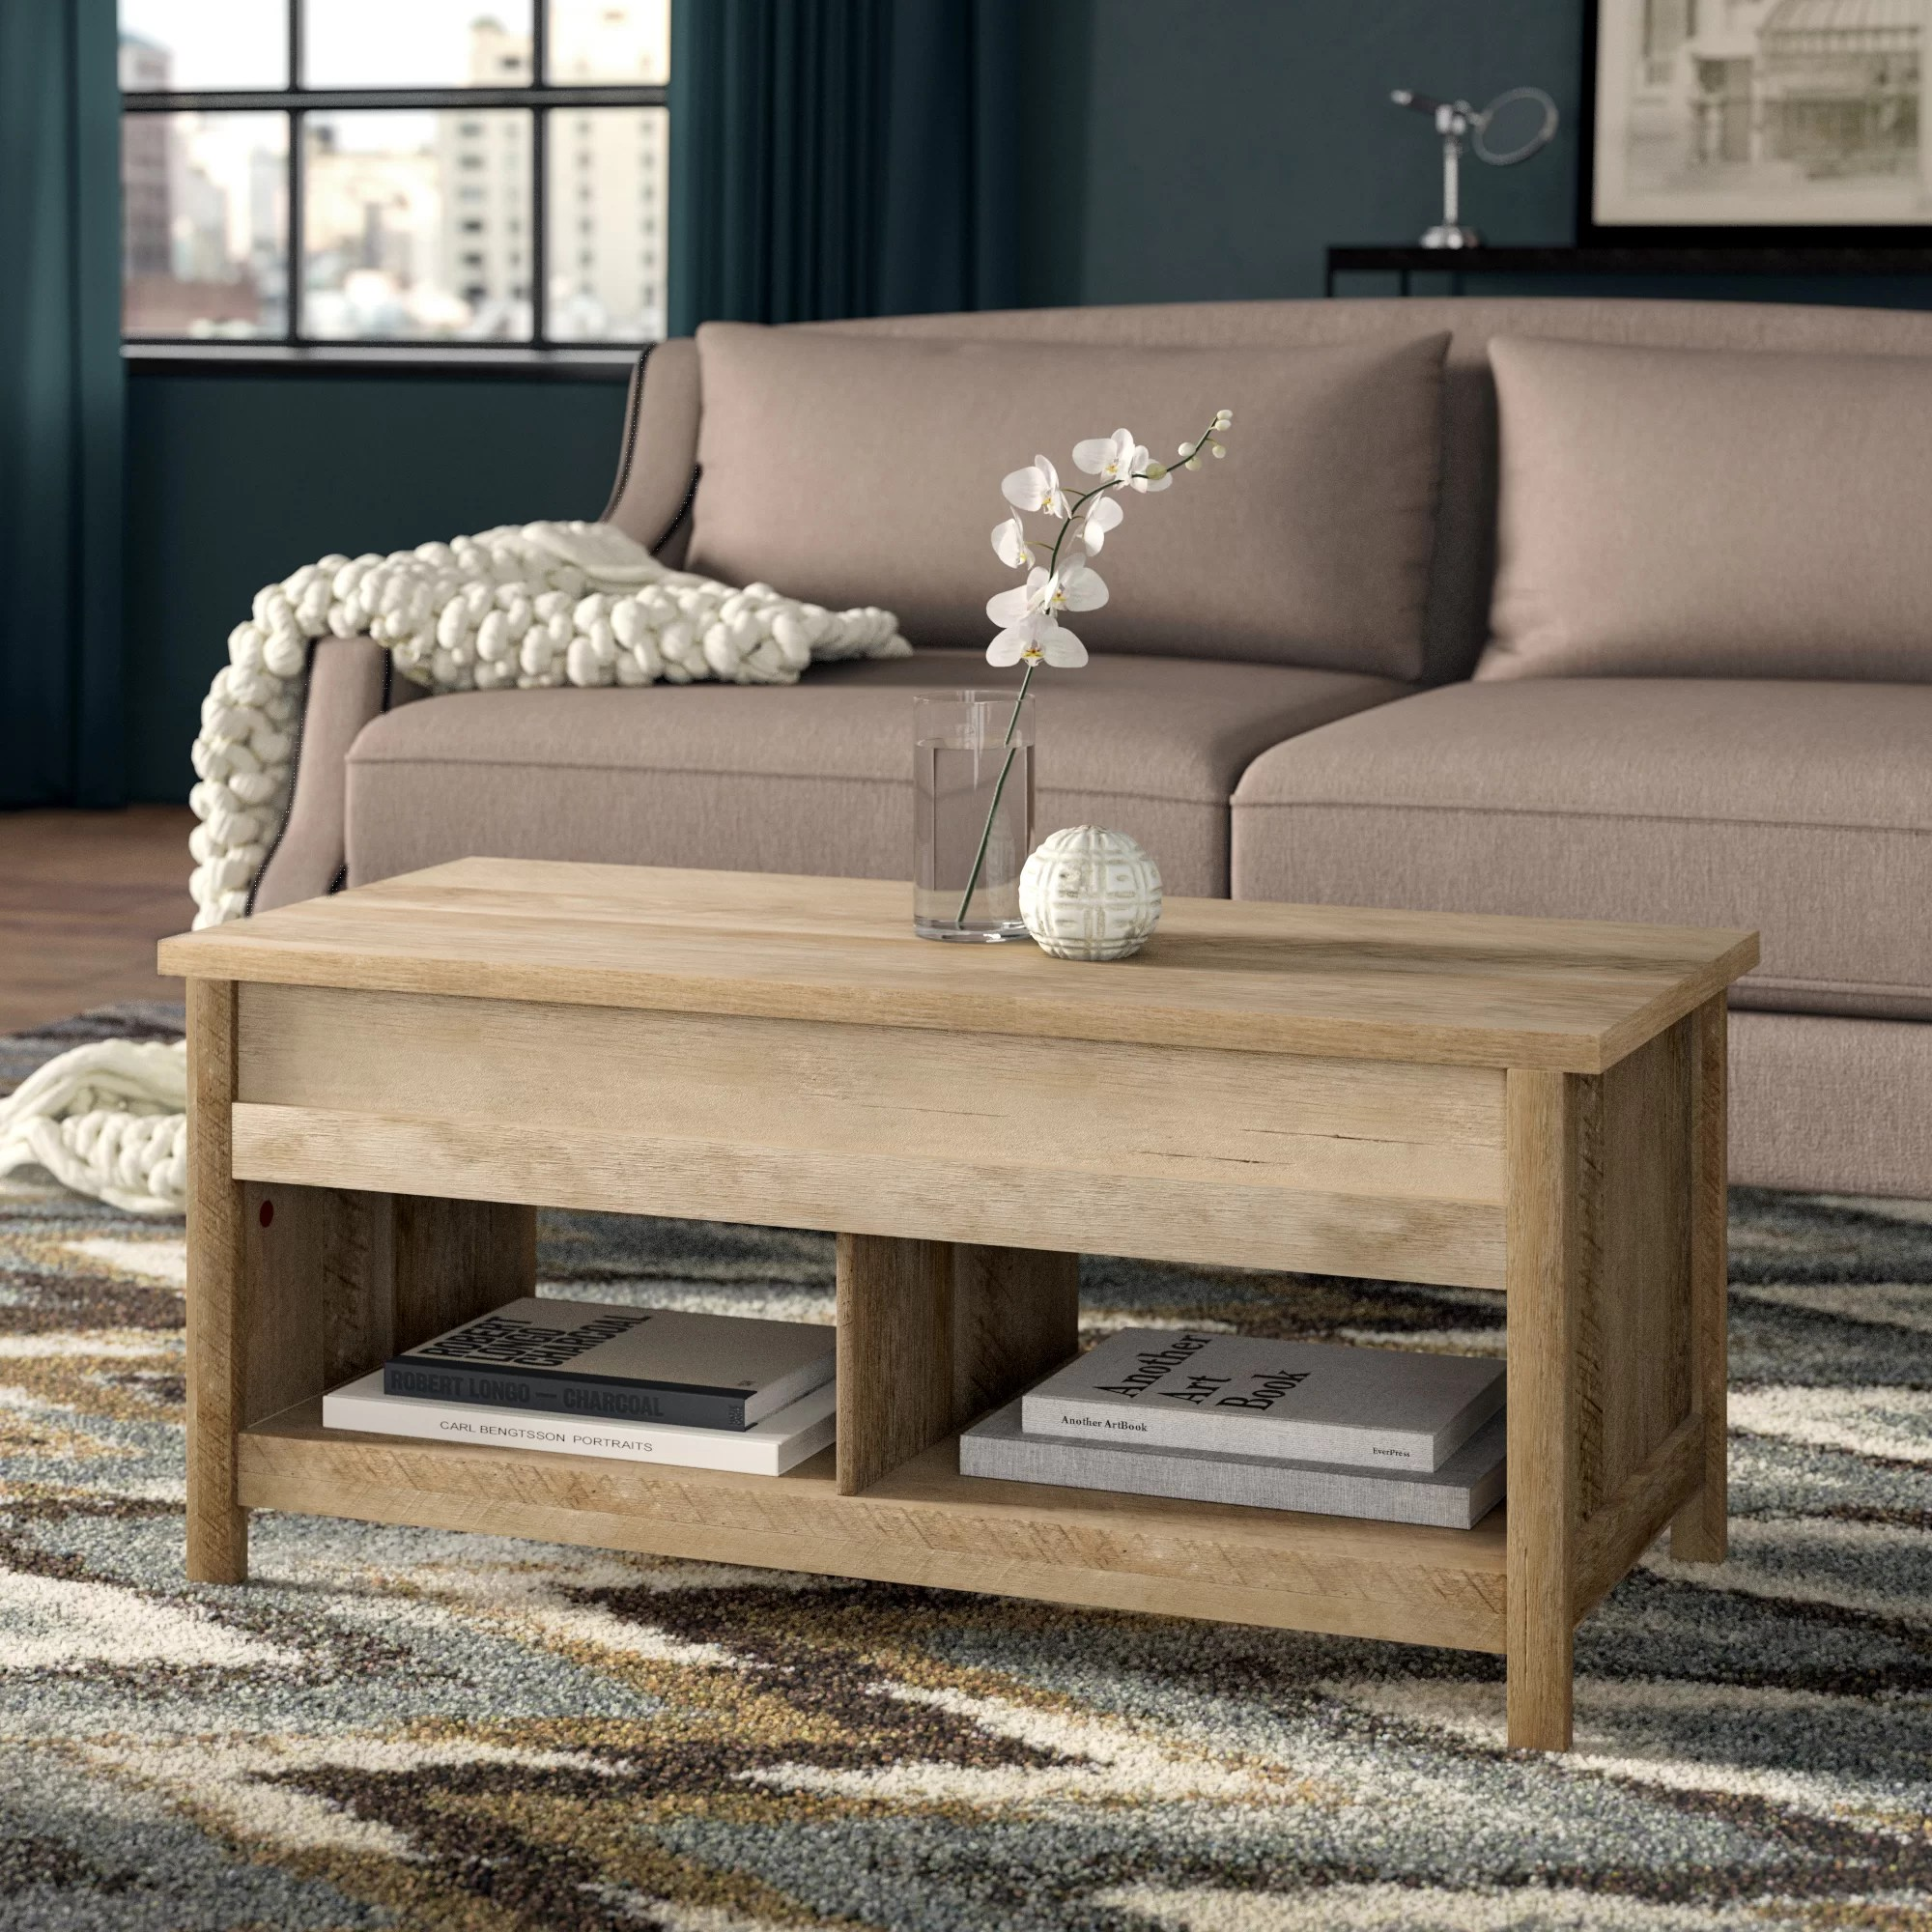 3 piece table set for living room ideas with light grey couch tilden coffee reviews birch lane product overview